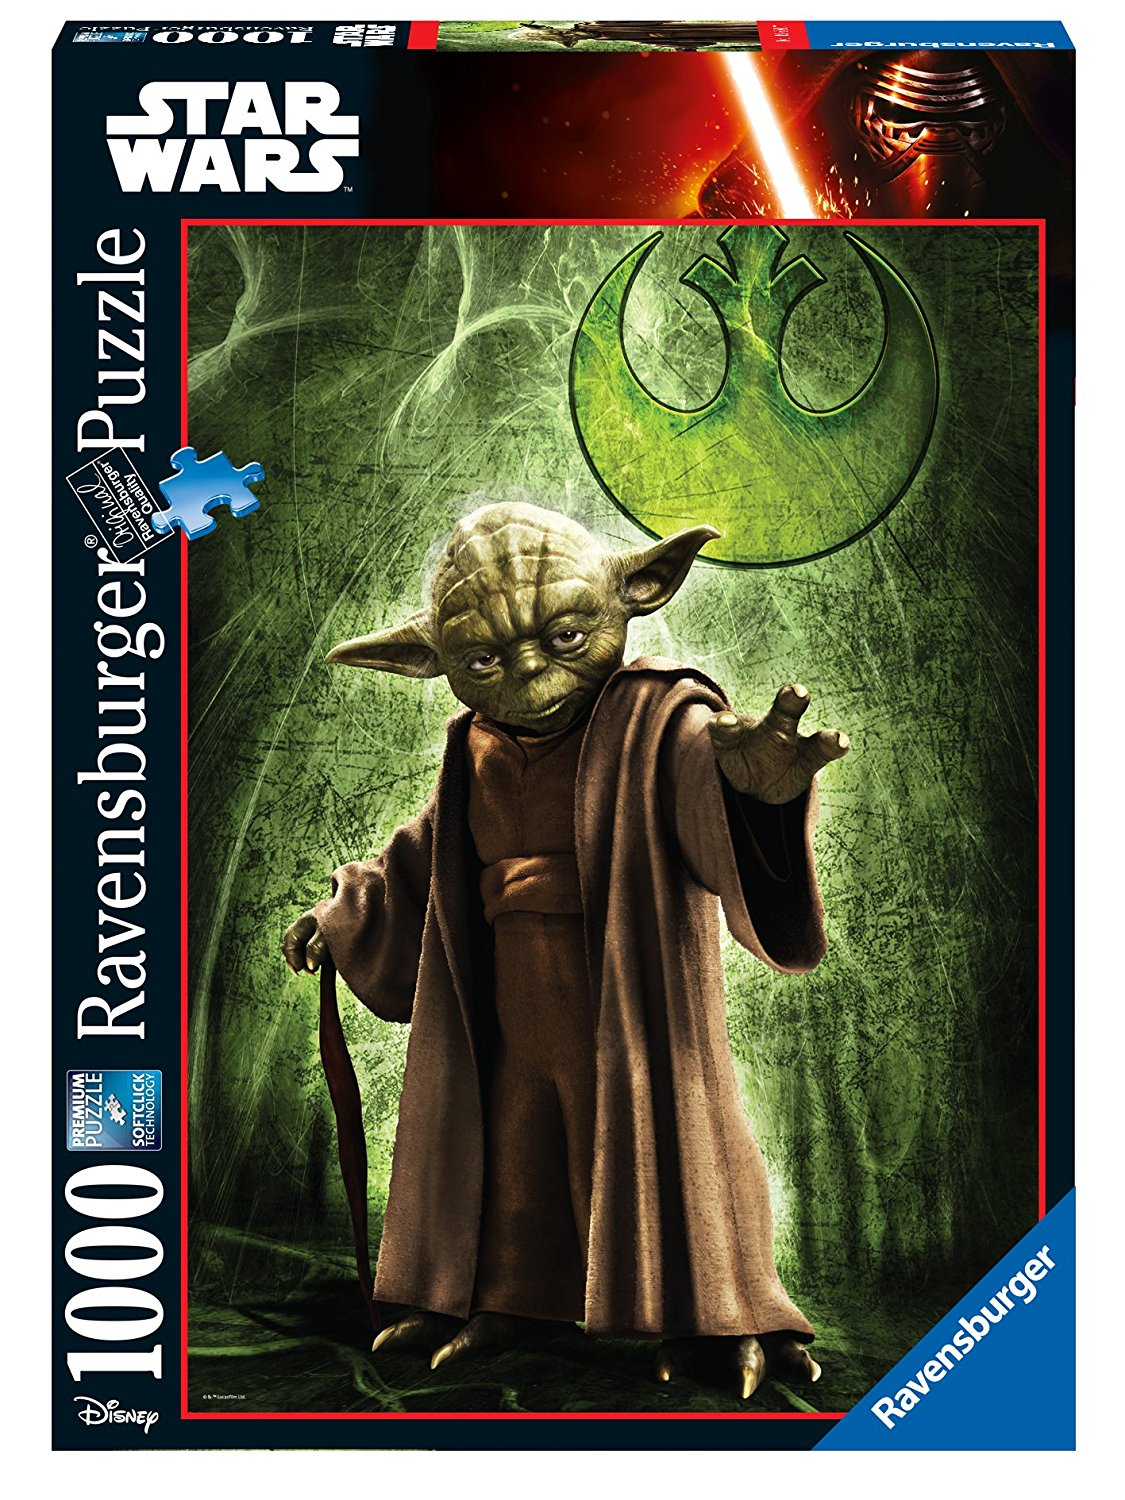 puzzle star wars ravensburger 19680 1000 pieces jigsaw puzzles other disney jigsaw puzzle. Black Bedroom Furniture Sets. Home Design Ideas